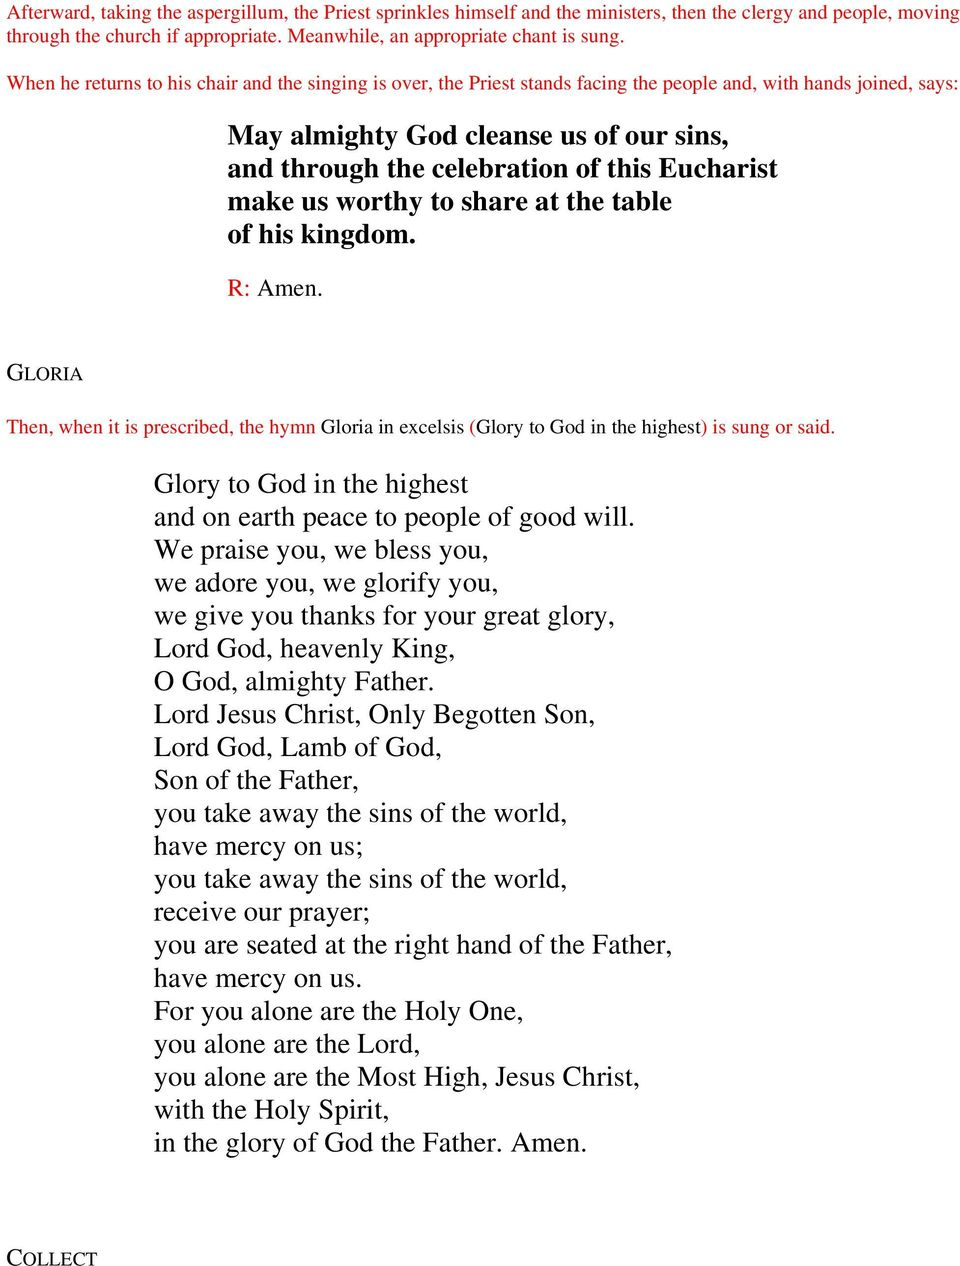 Eucharist make us worthy to share at the table of his kingdom. GLORIA Then, when it is prescribed, the hymn Gloria in excelsis (Glory to God in the highest) is sung or said.